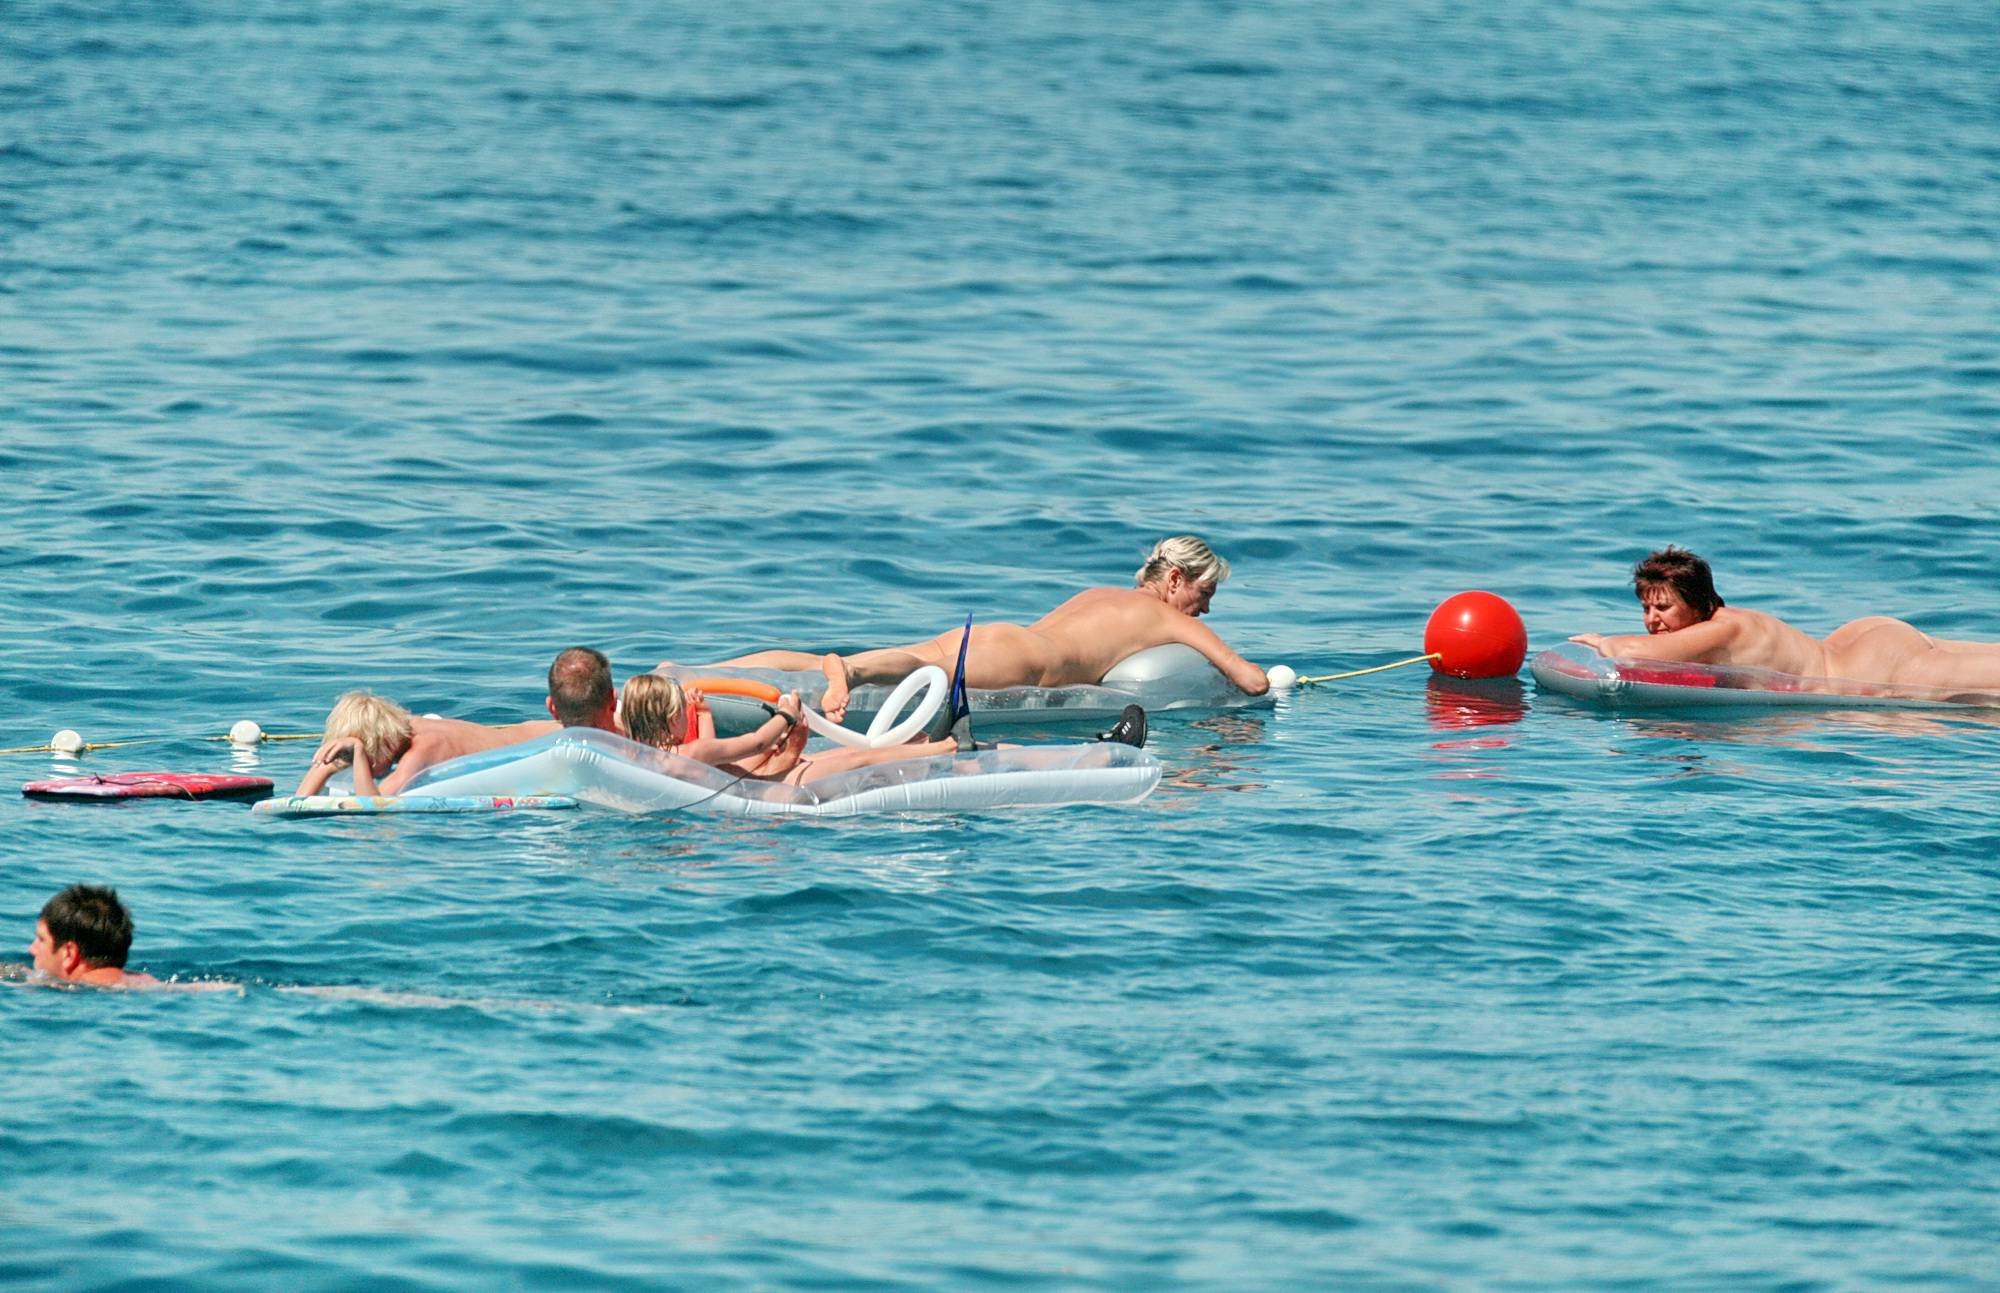 Pure Nudism Photos Adult On Water Floaters - 3